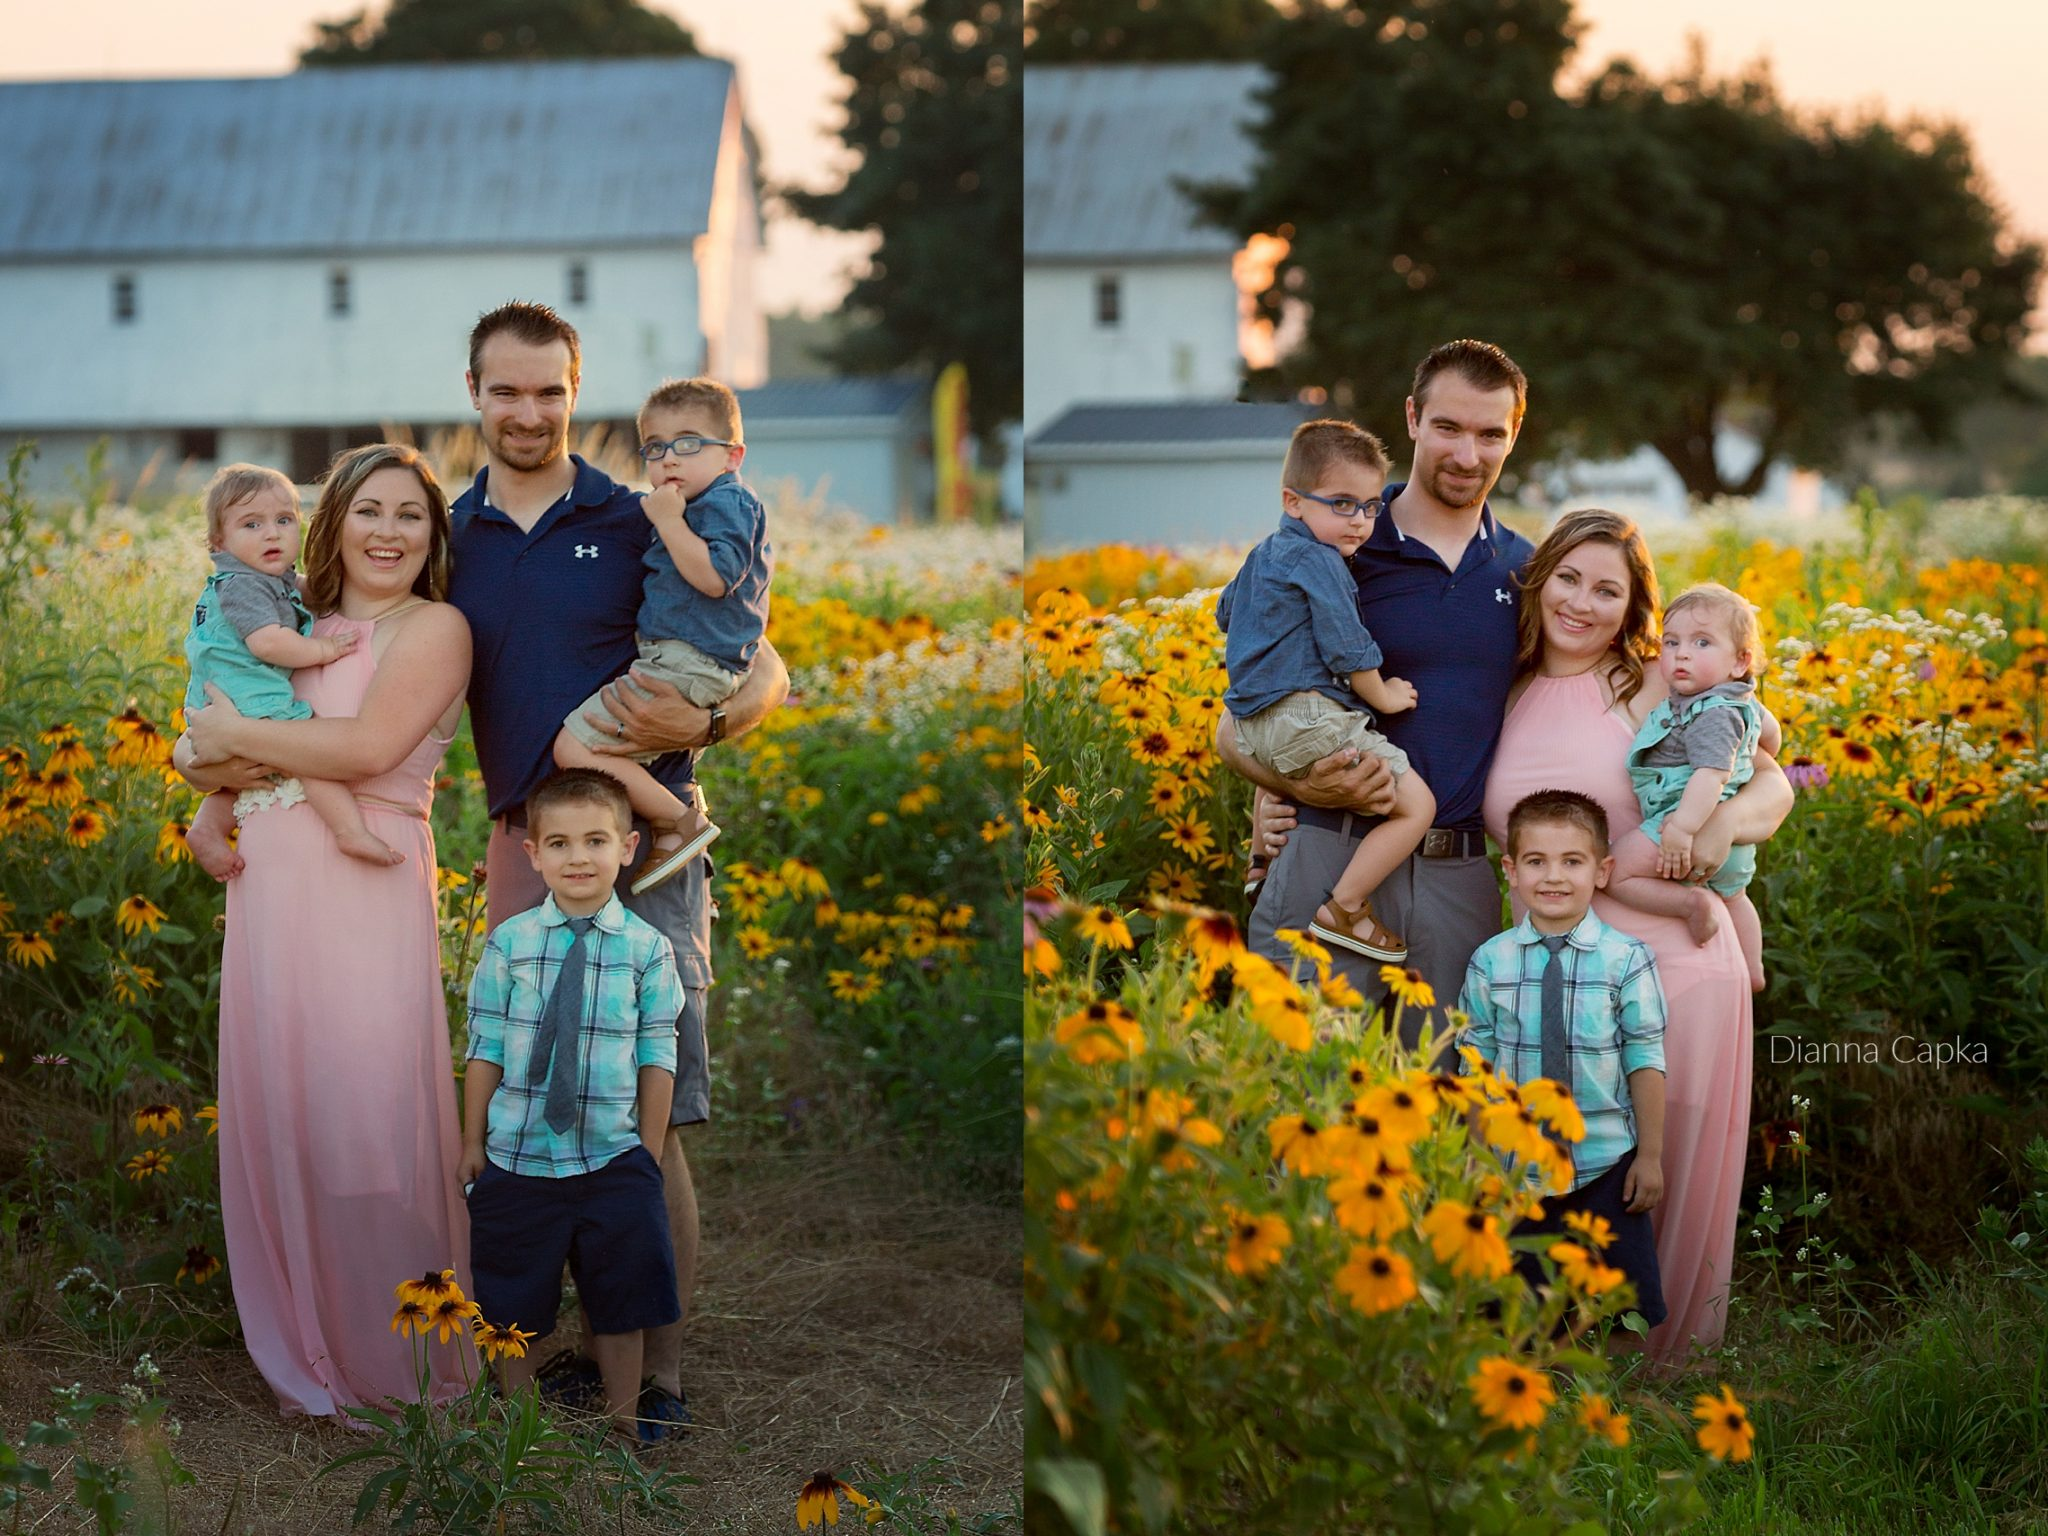 Lititz Flowerfield Lancaster flowerfield Photographer Family Photo Swap